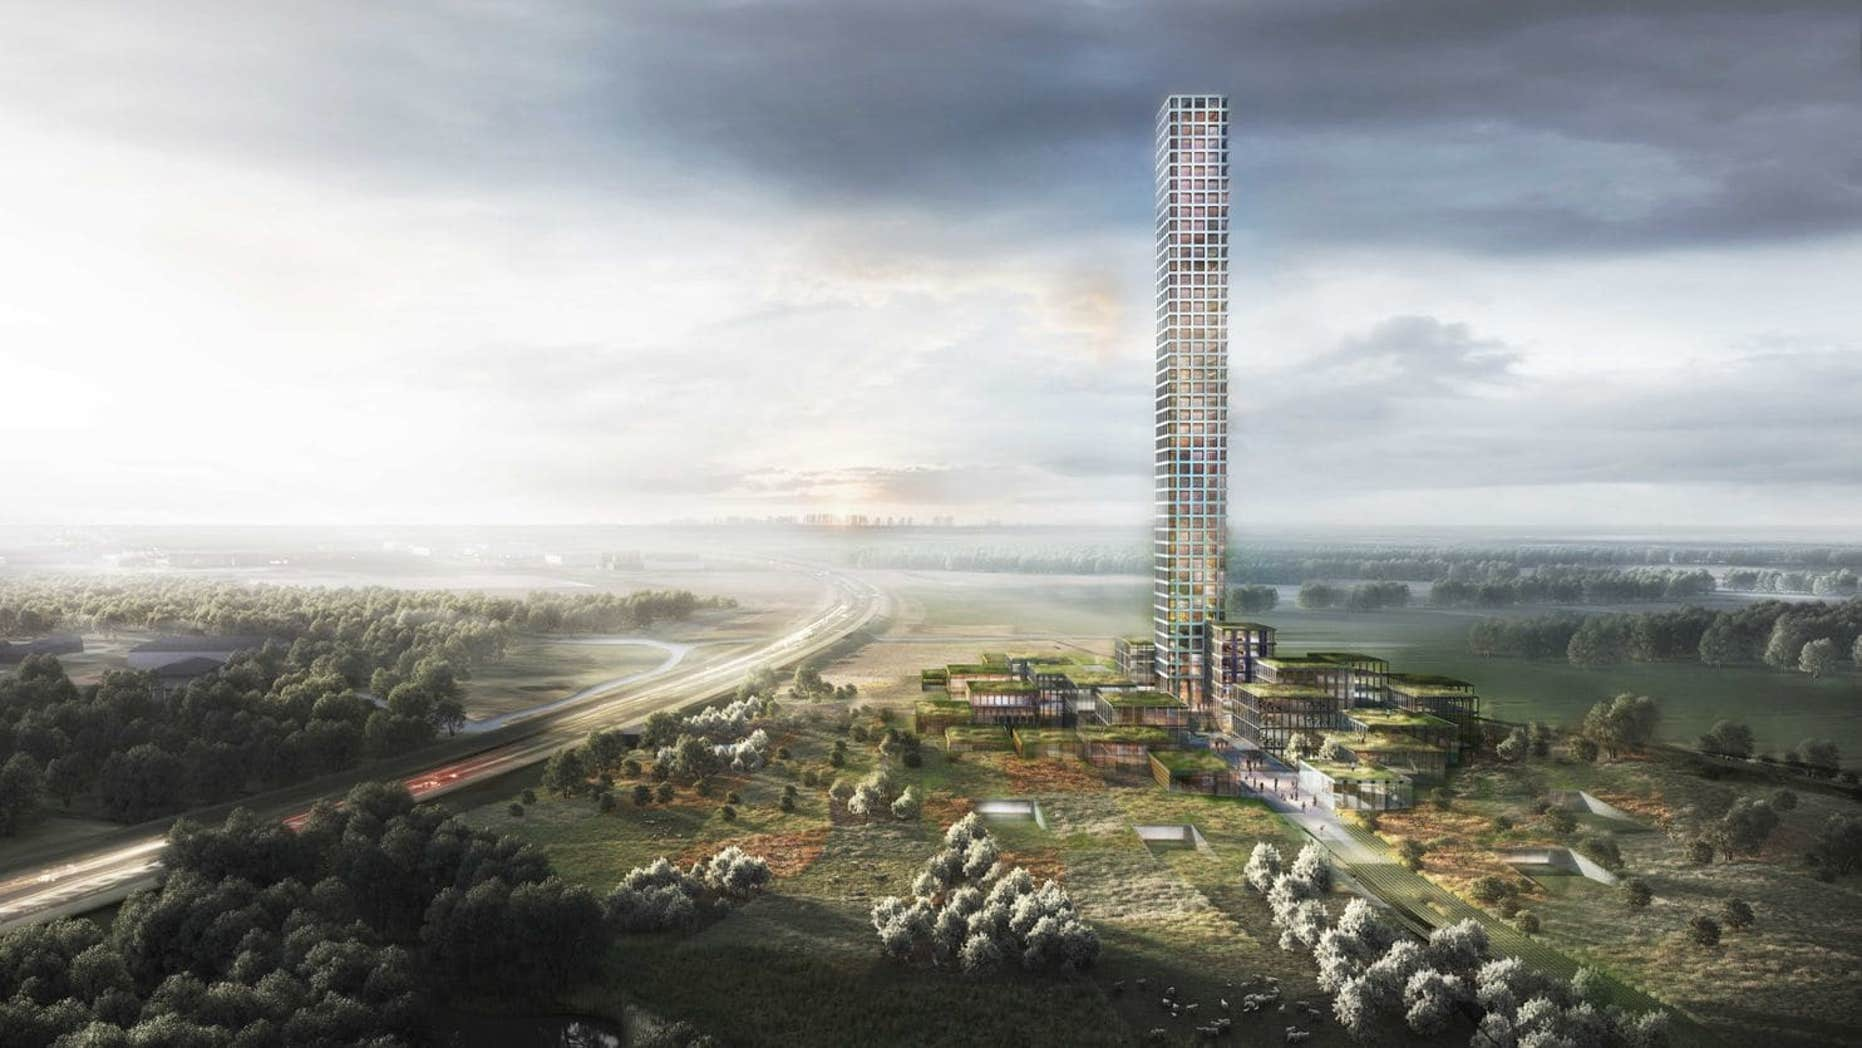 A plan to build Western Europe's tallest skyscraper in a rural Danish town of just 7,000 people has been given a green light by officials who welcome the over-the-top building.